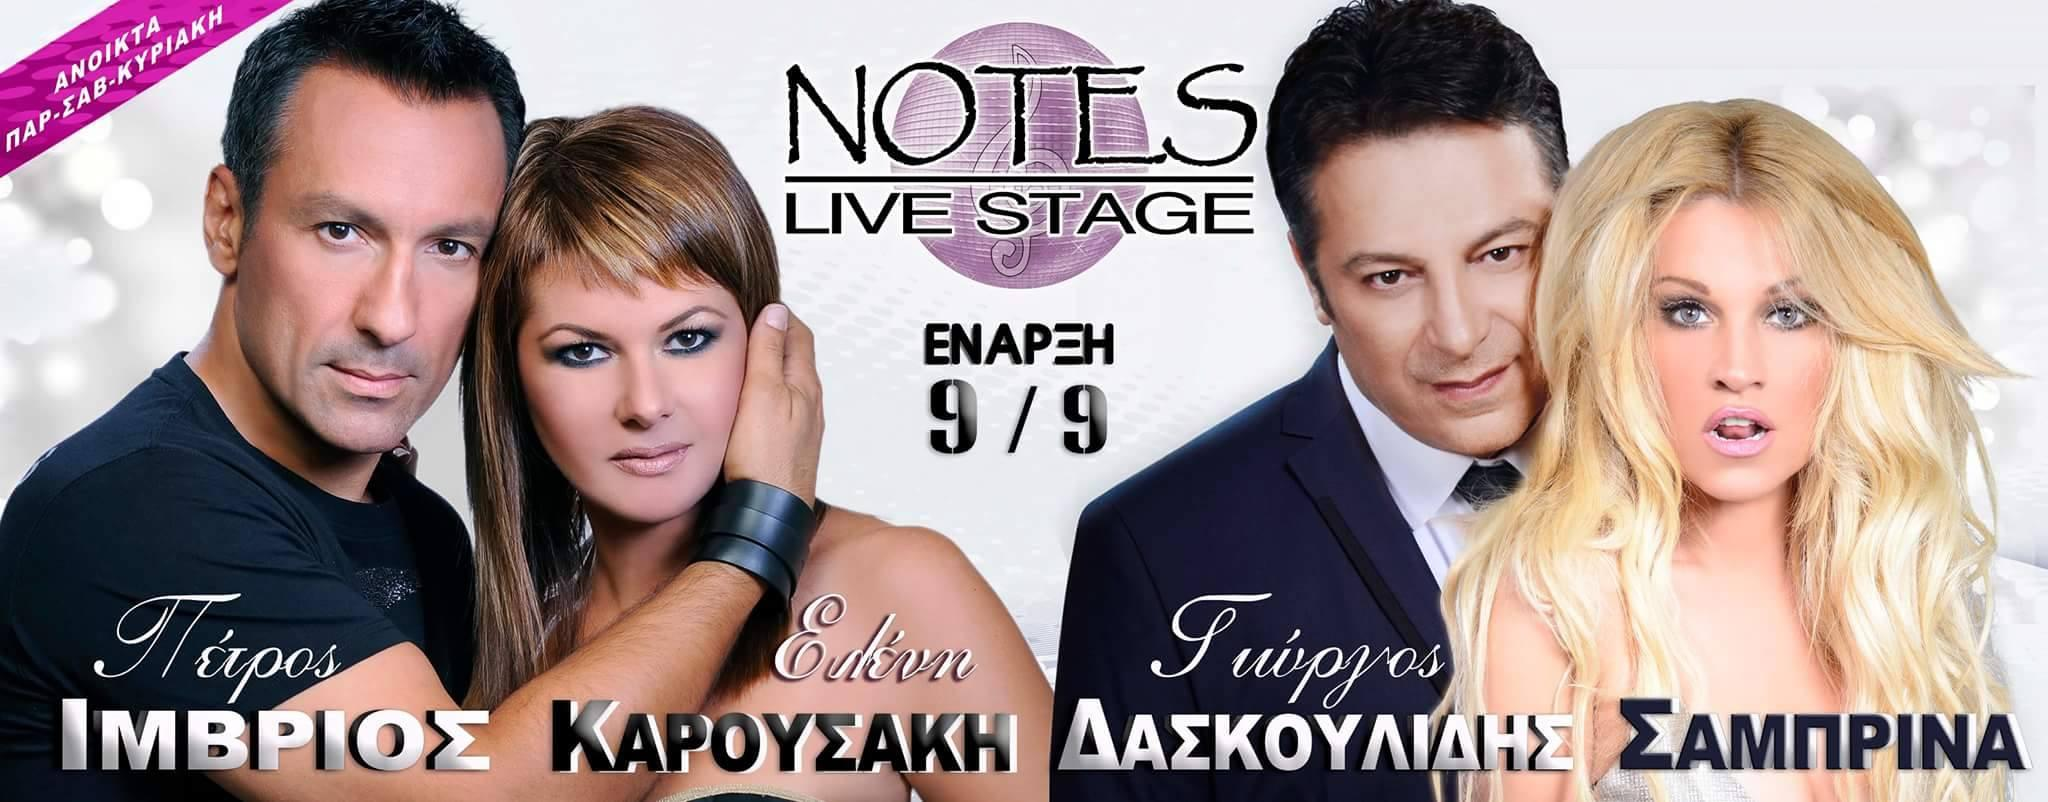 notes-live